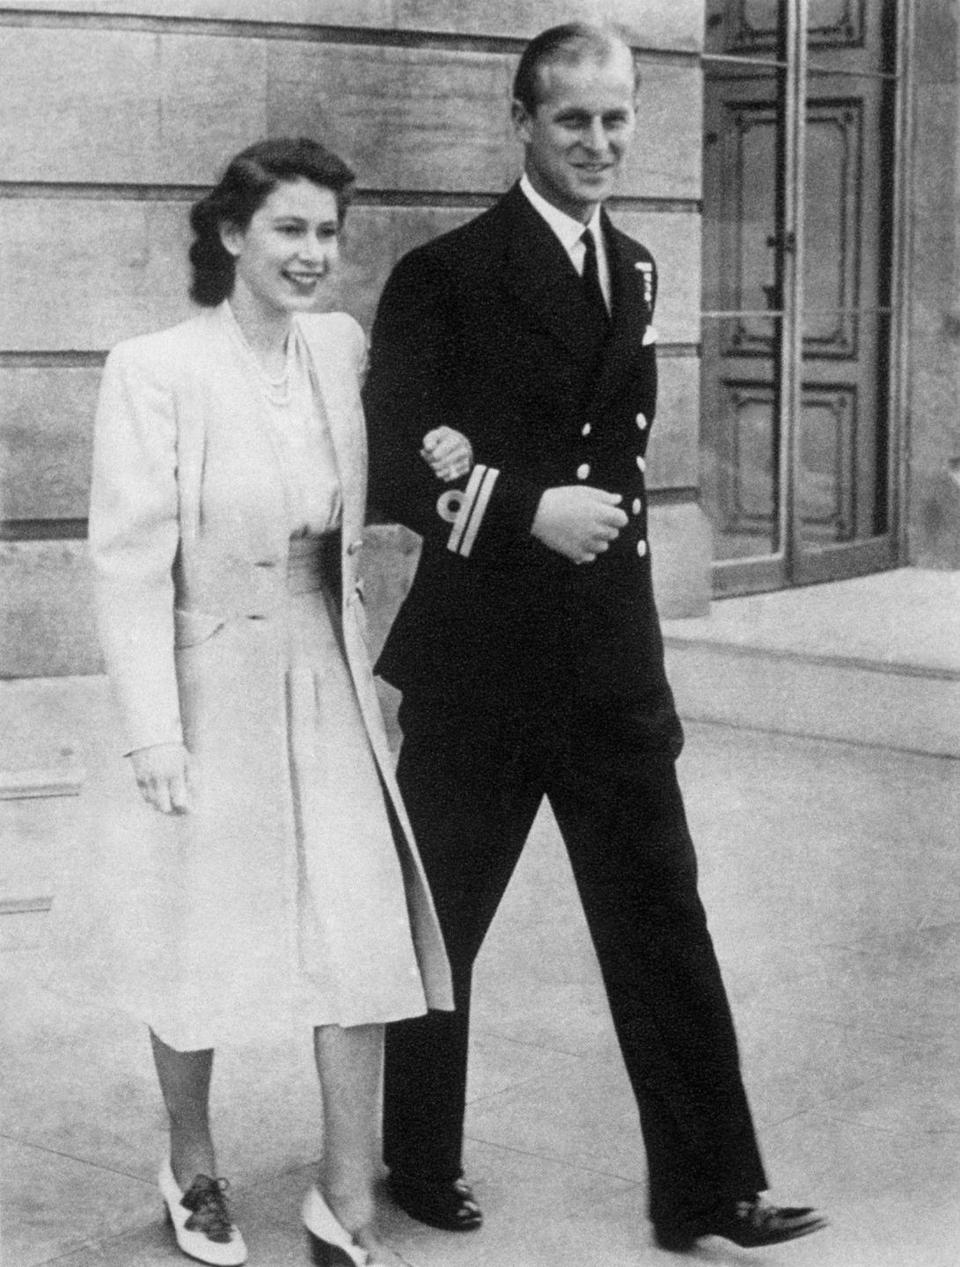 <p>Princess Elizabeth and her soon-to-be husband Philip Mountbatten, photographed soon after their engagement announcement.</p>